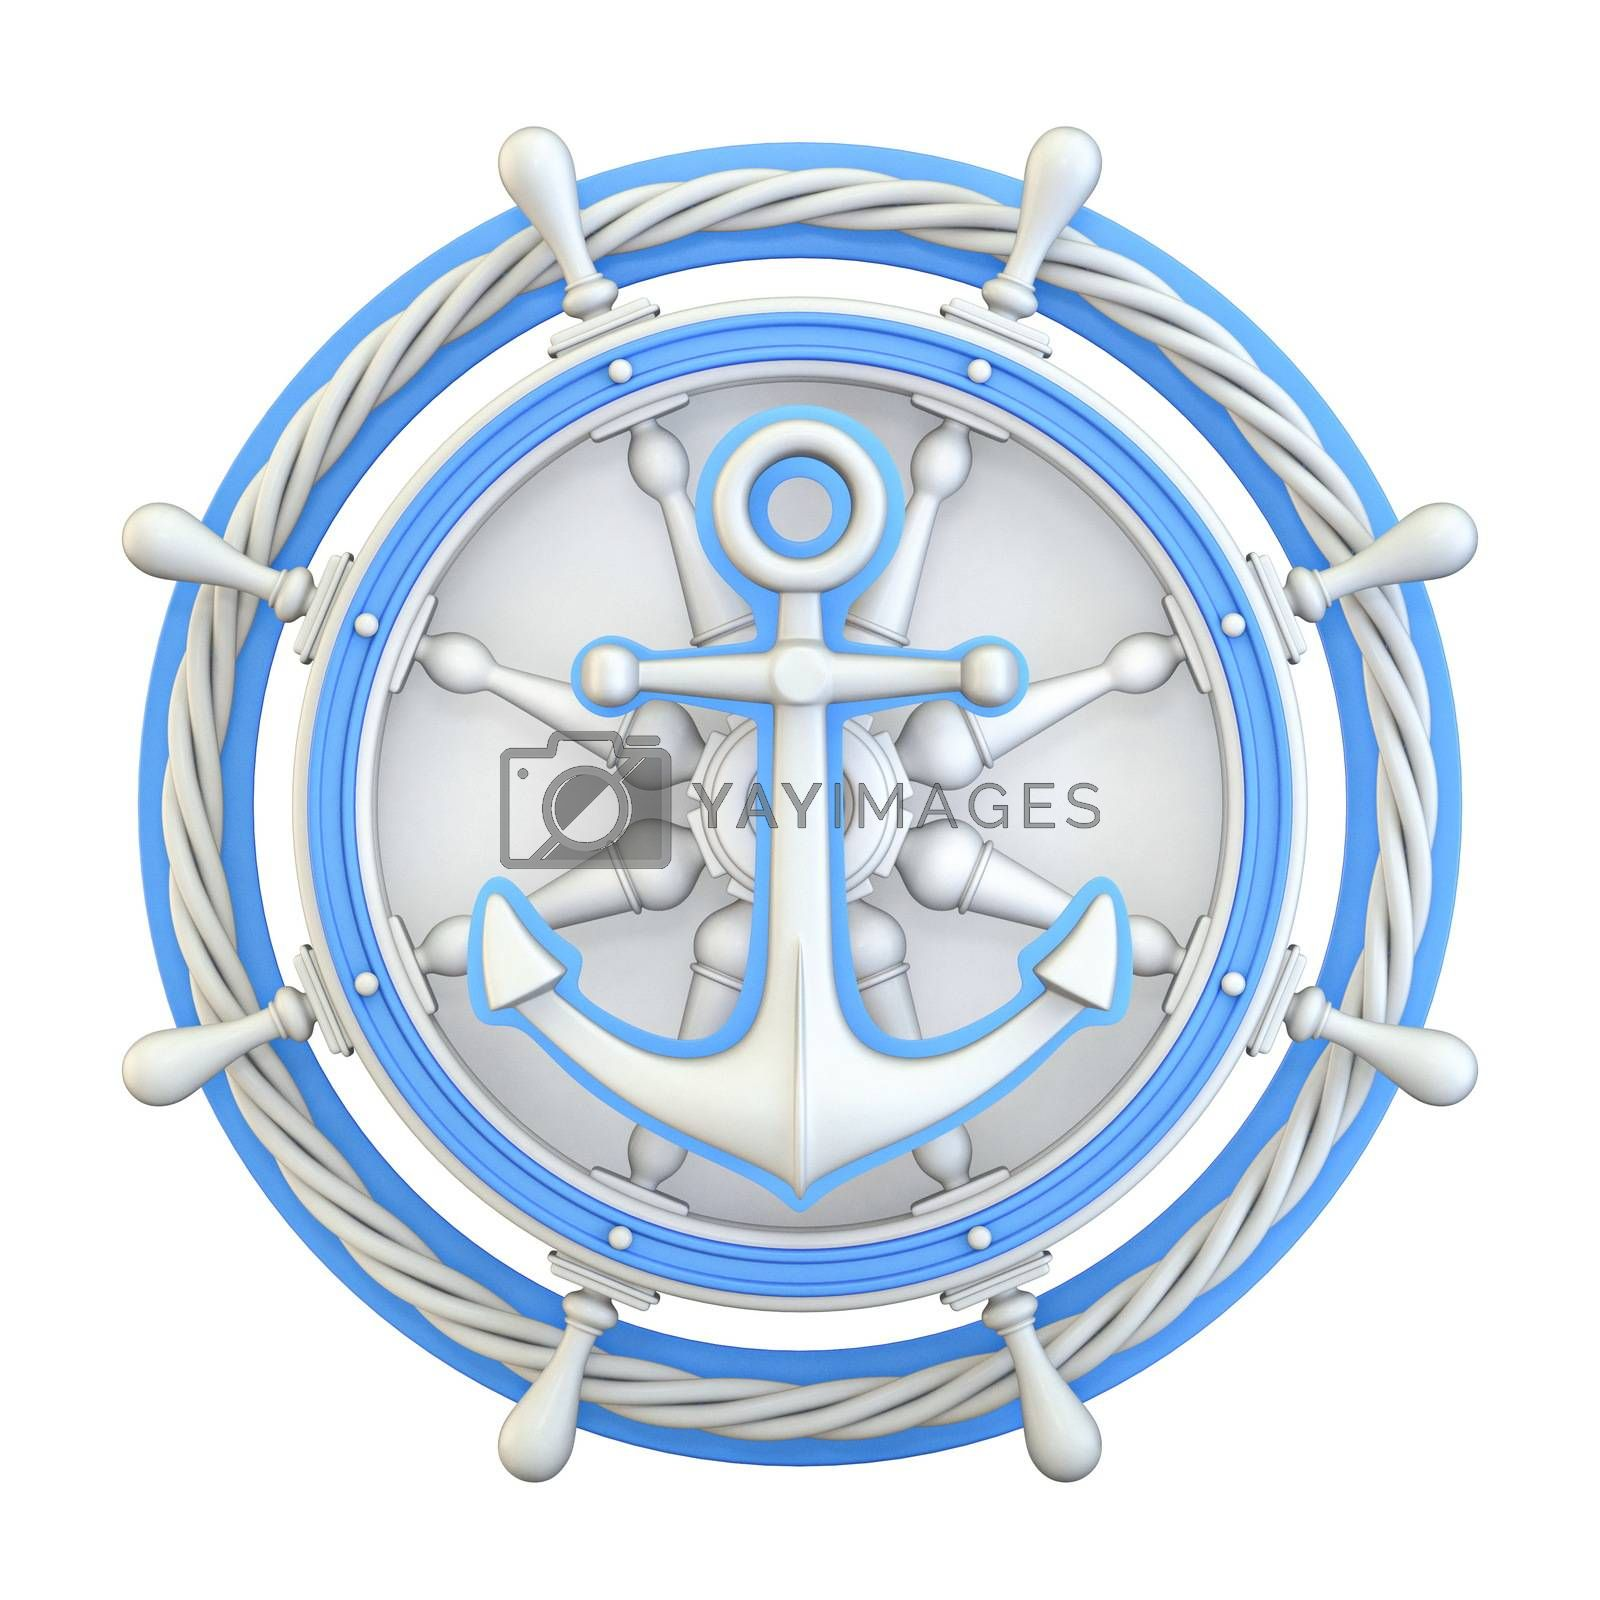 Anchor, ship wheel and rope 3D render illustration isolated on white background